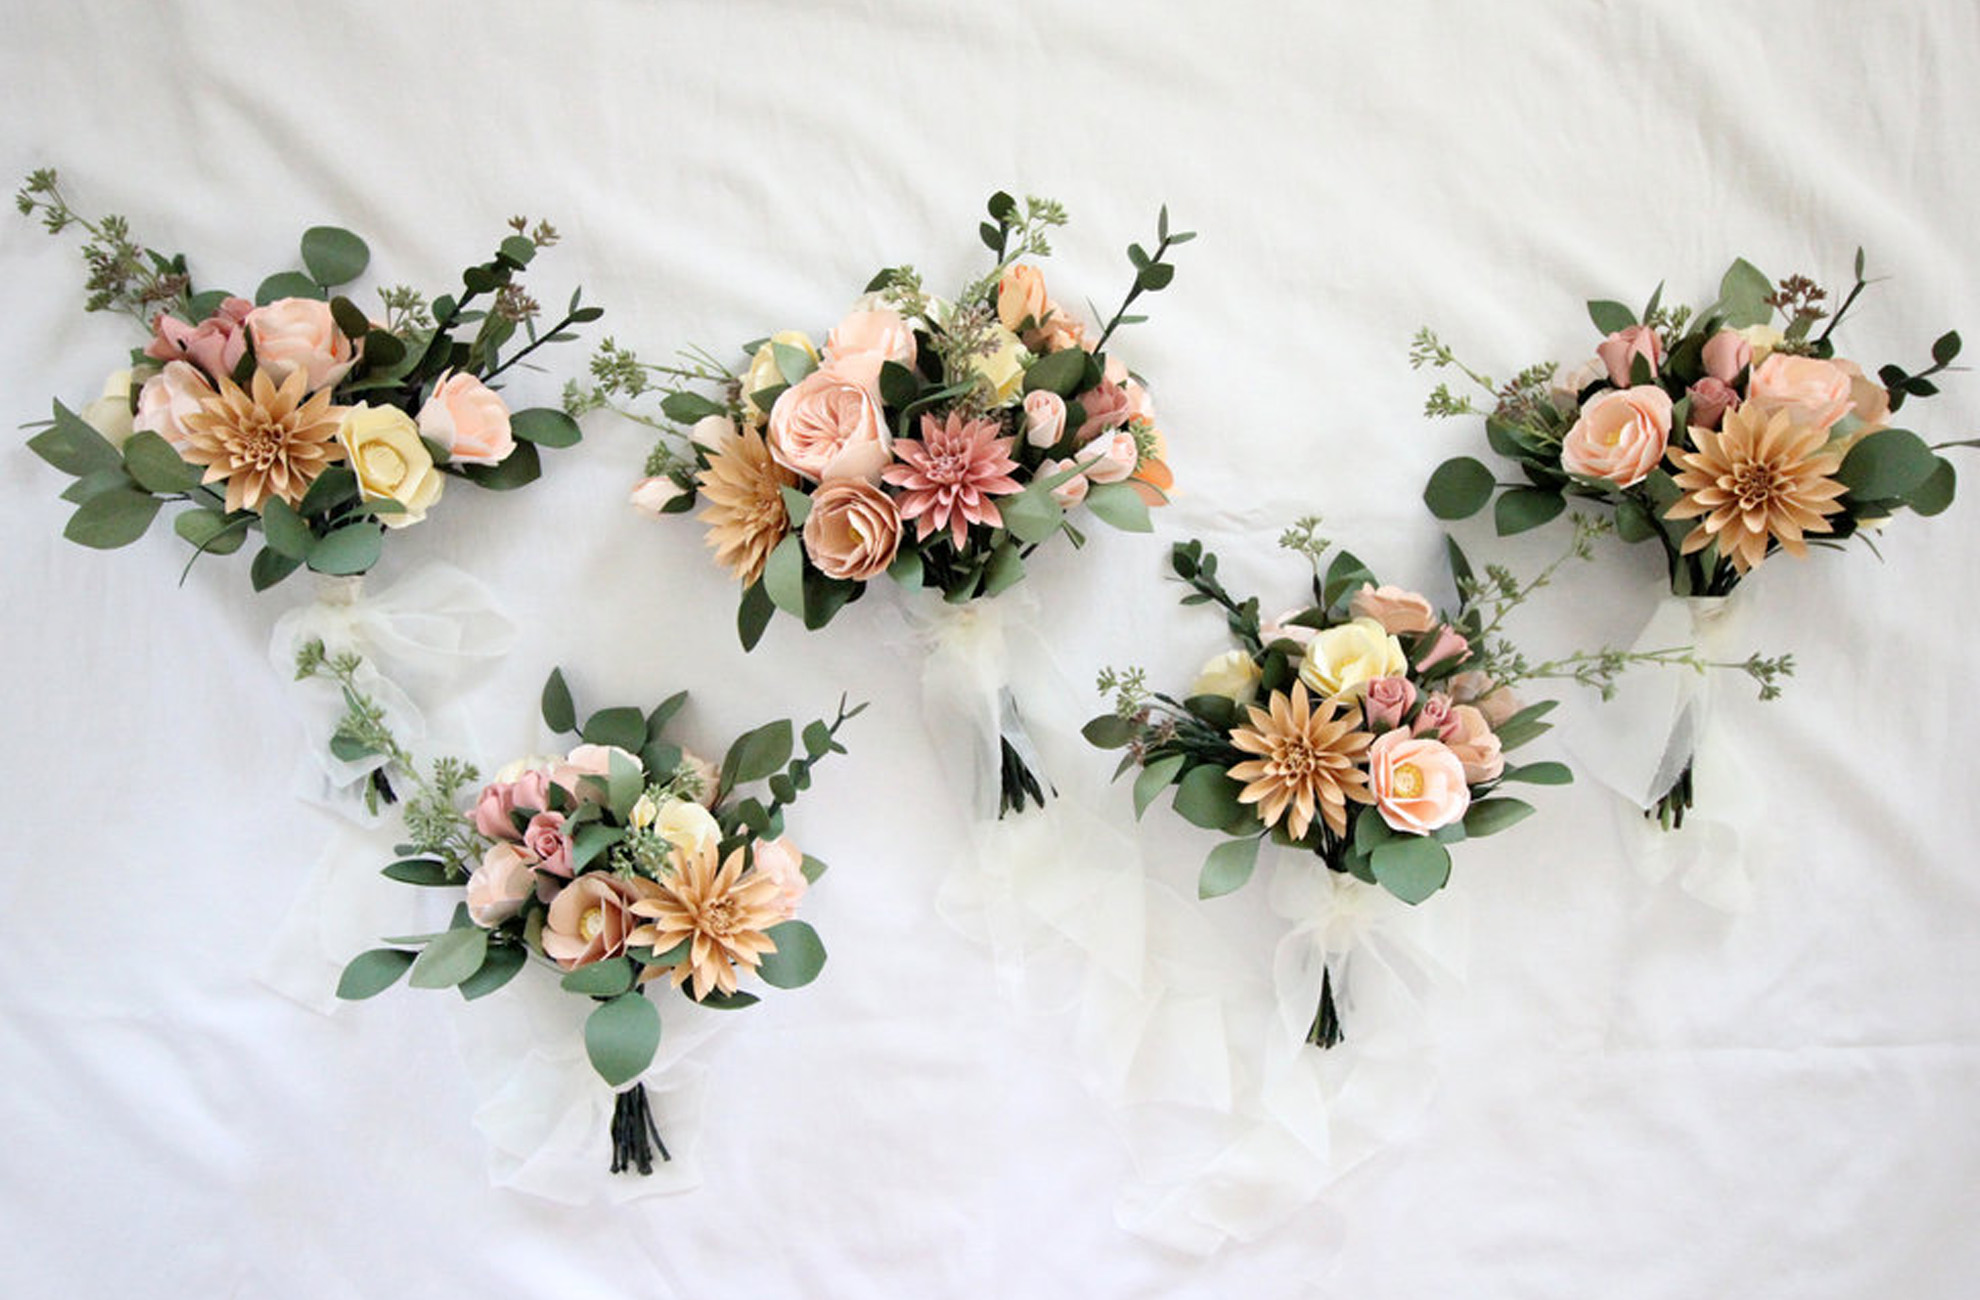 A selection of alternative wedding bouquets for a summer wedding at Combermere Abbey